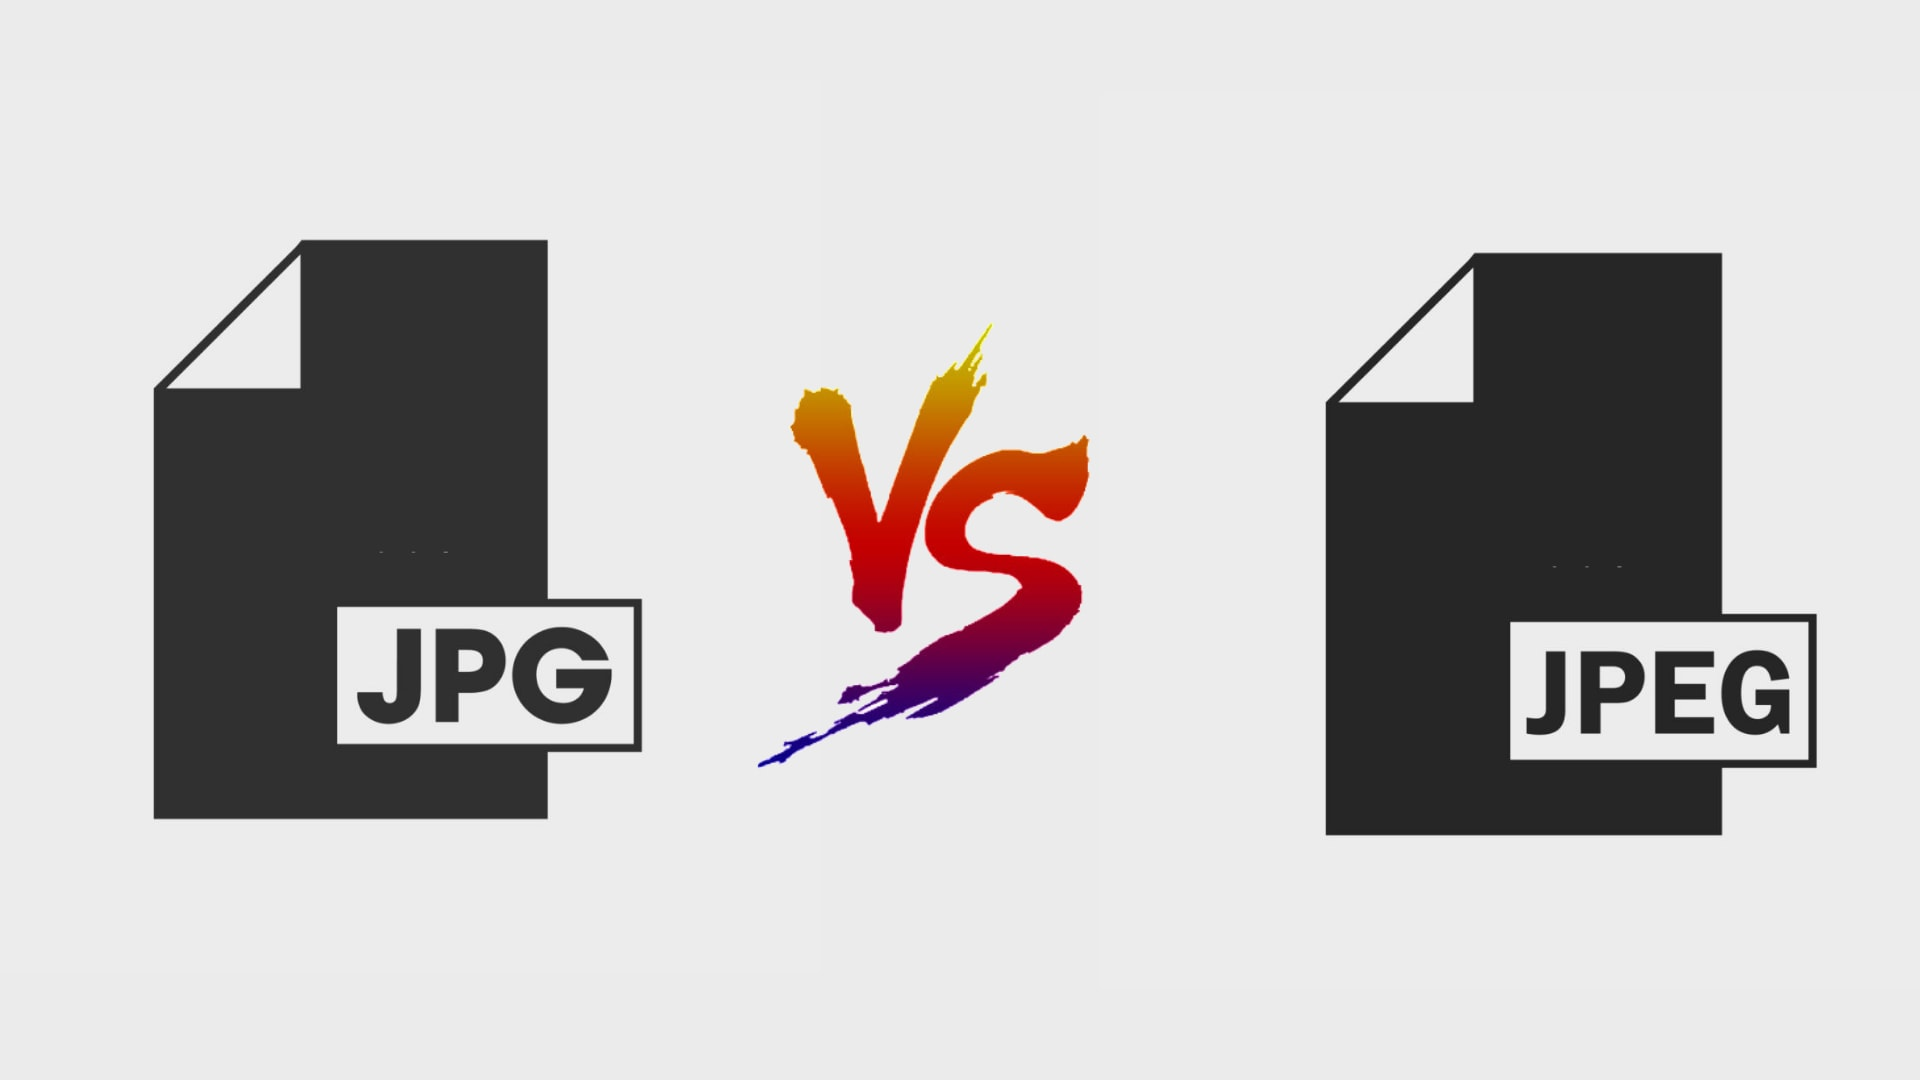 JPG vs JPEG, What is the Difference Between JPG vs JPEG